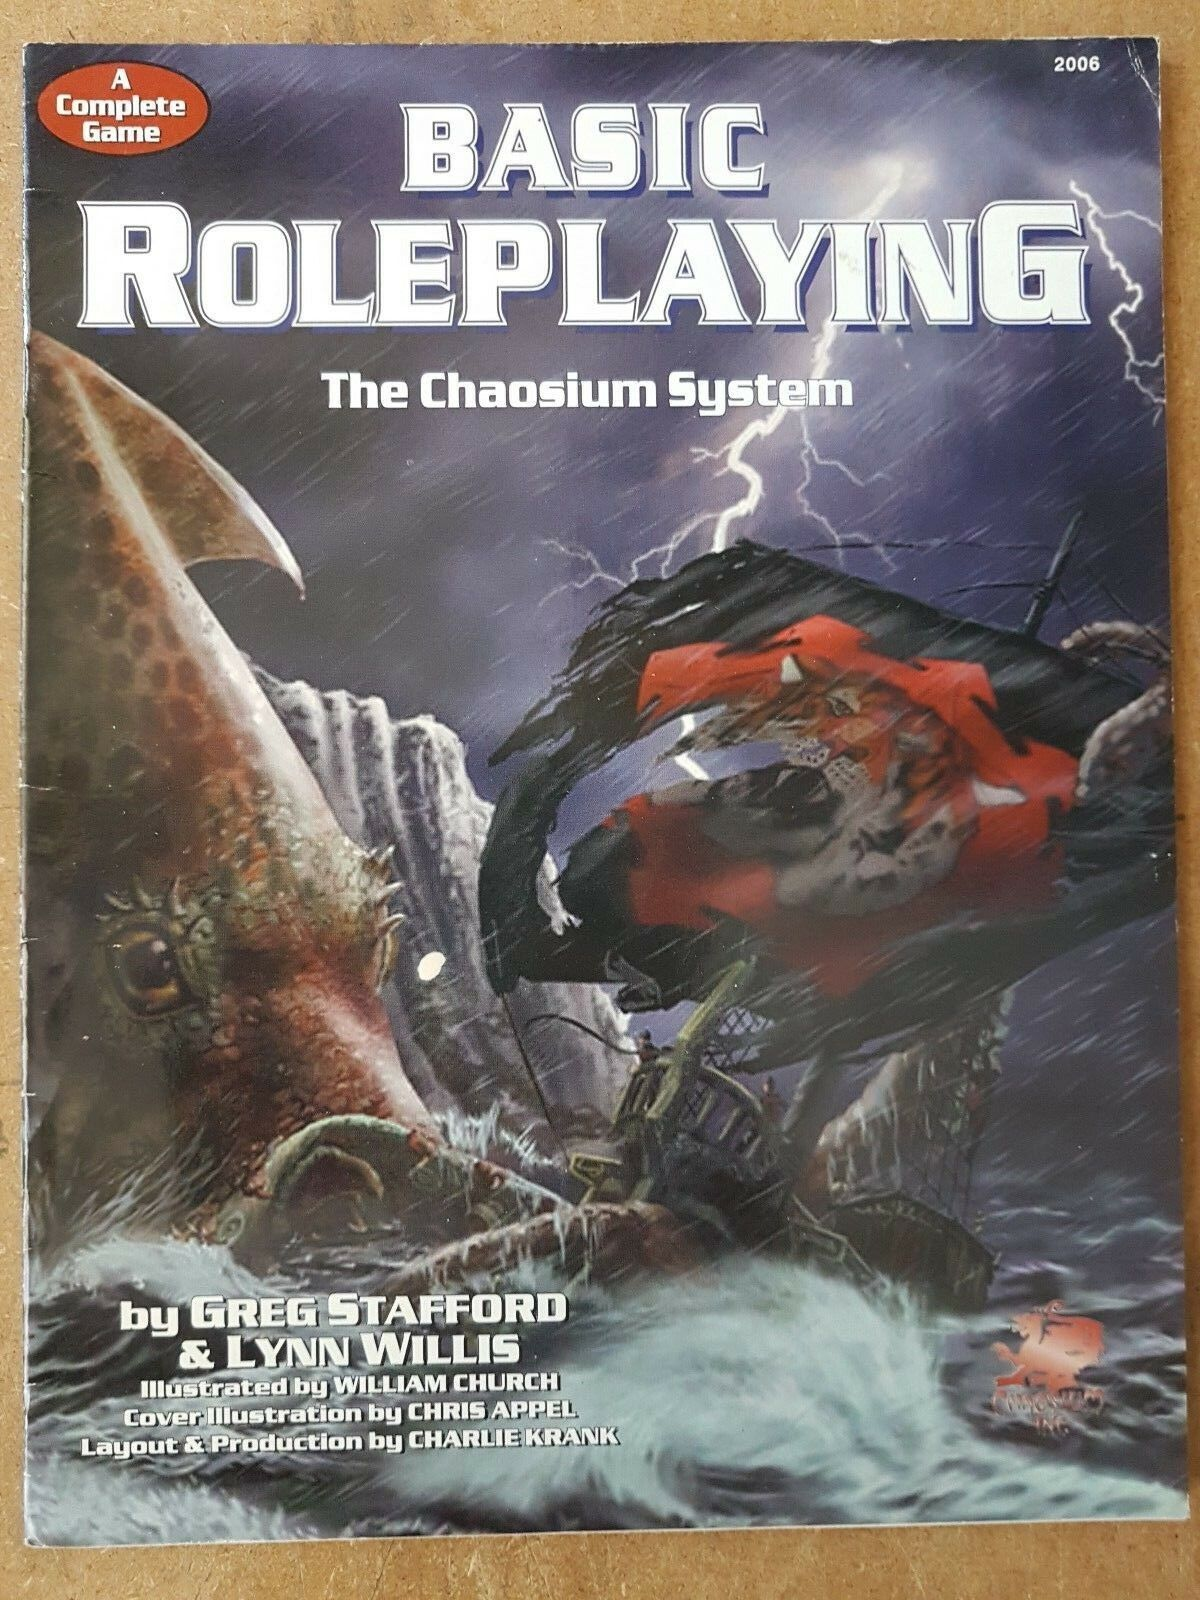 Un Completo Guida a Base Roleplaying The Chaosium Sistema - Chaosium Inc